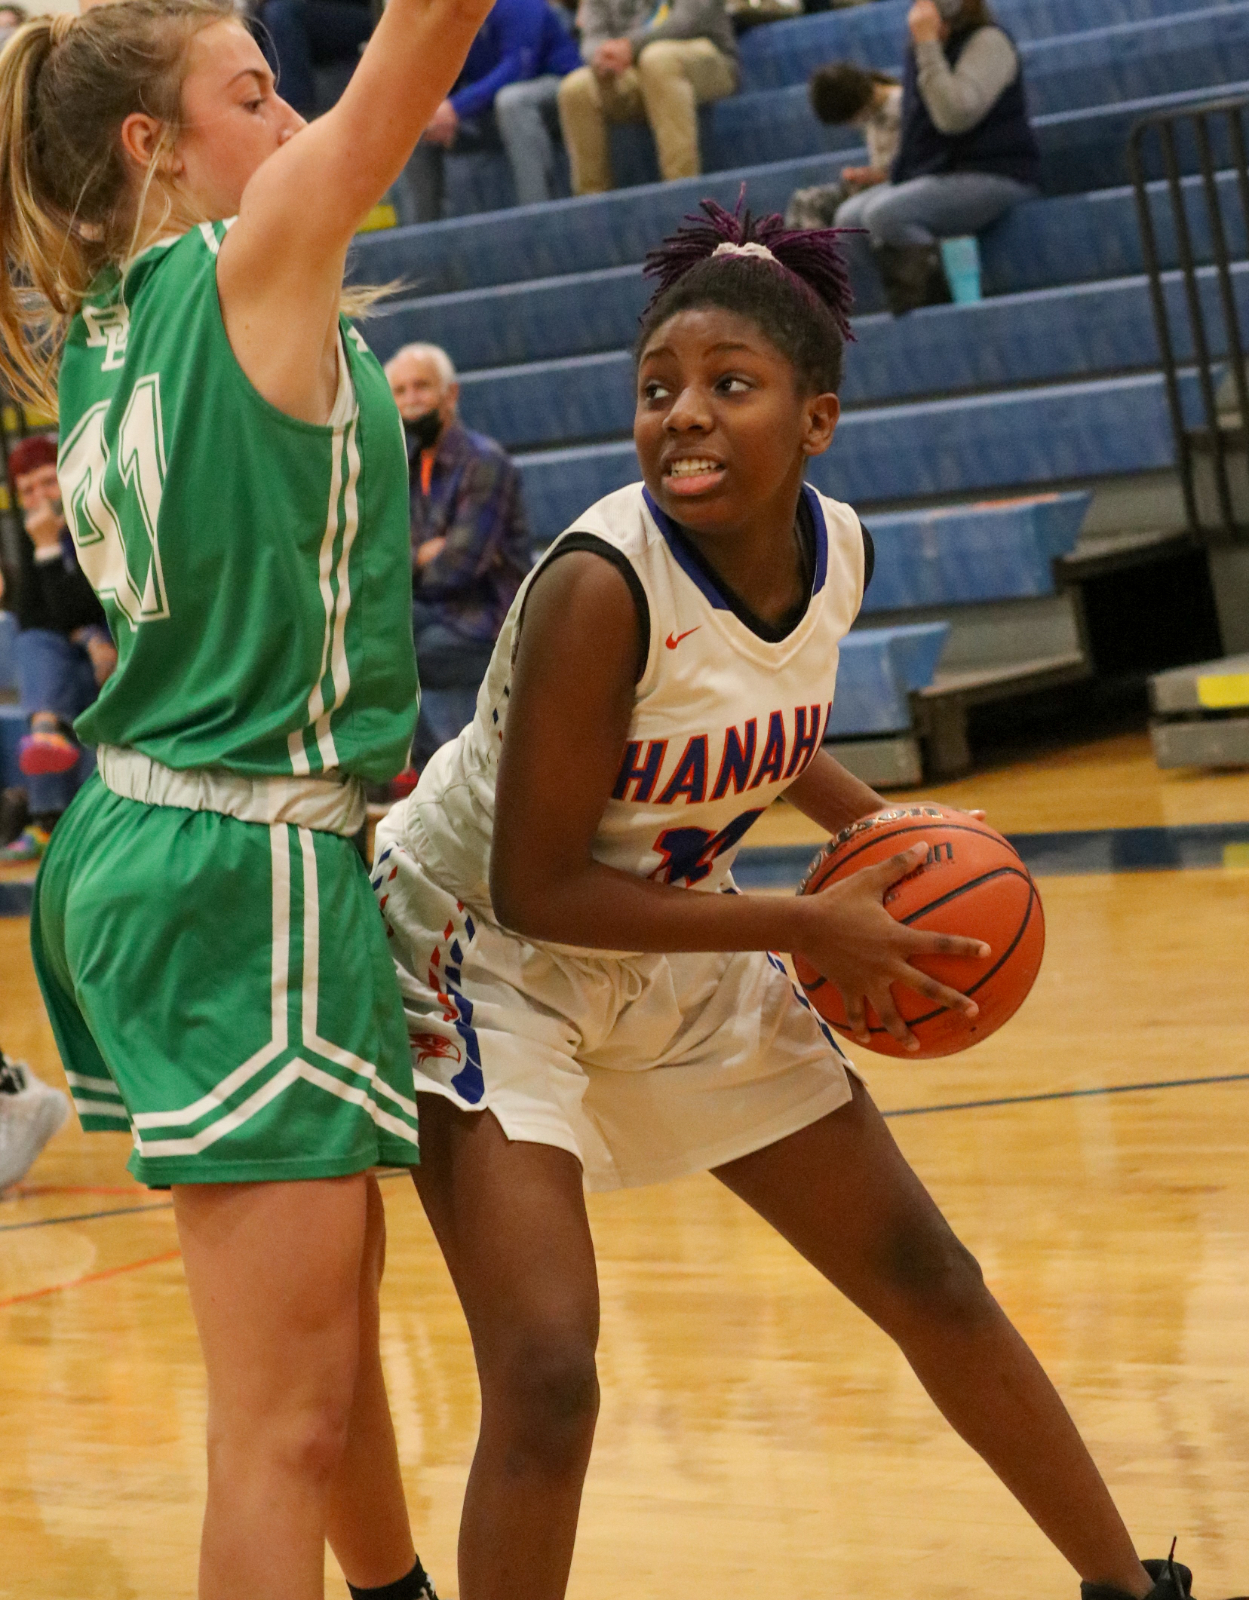 1.11.2021 (PHOTO GALLERY): Hanahan JV Girls BKB vs Bishop England HS – Photos by Cyril Samonte